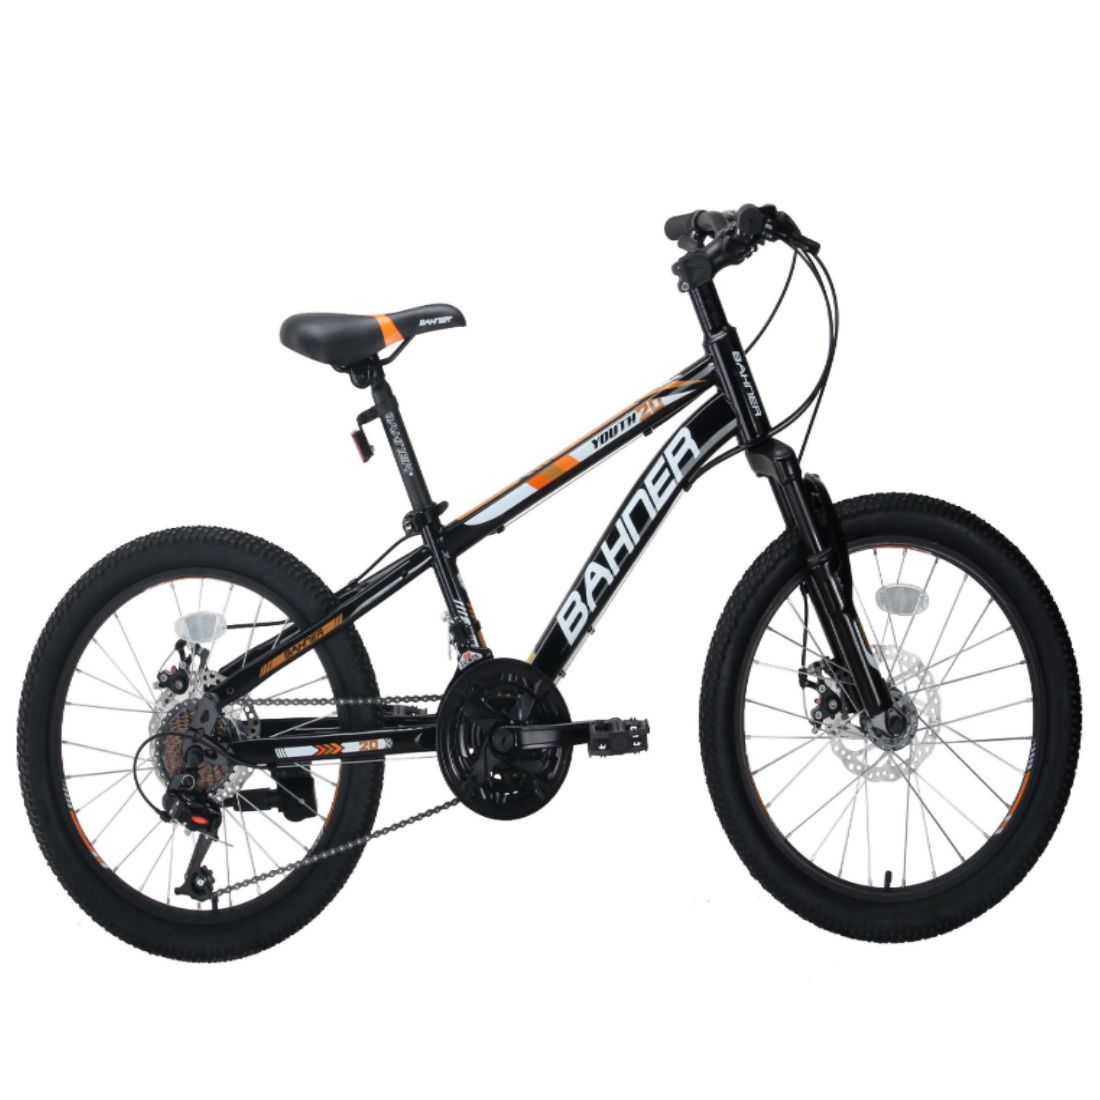 BICICLETA MTB ARO 20 YOUTH 2.0